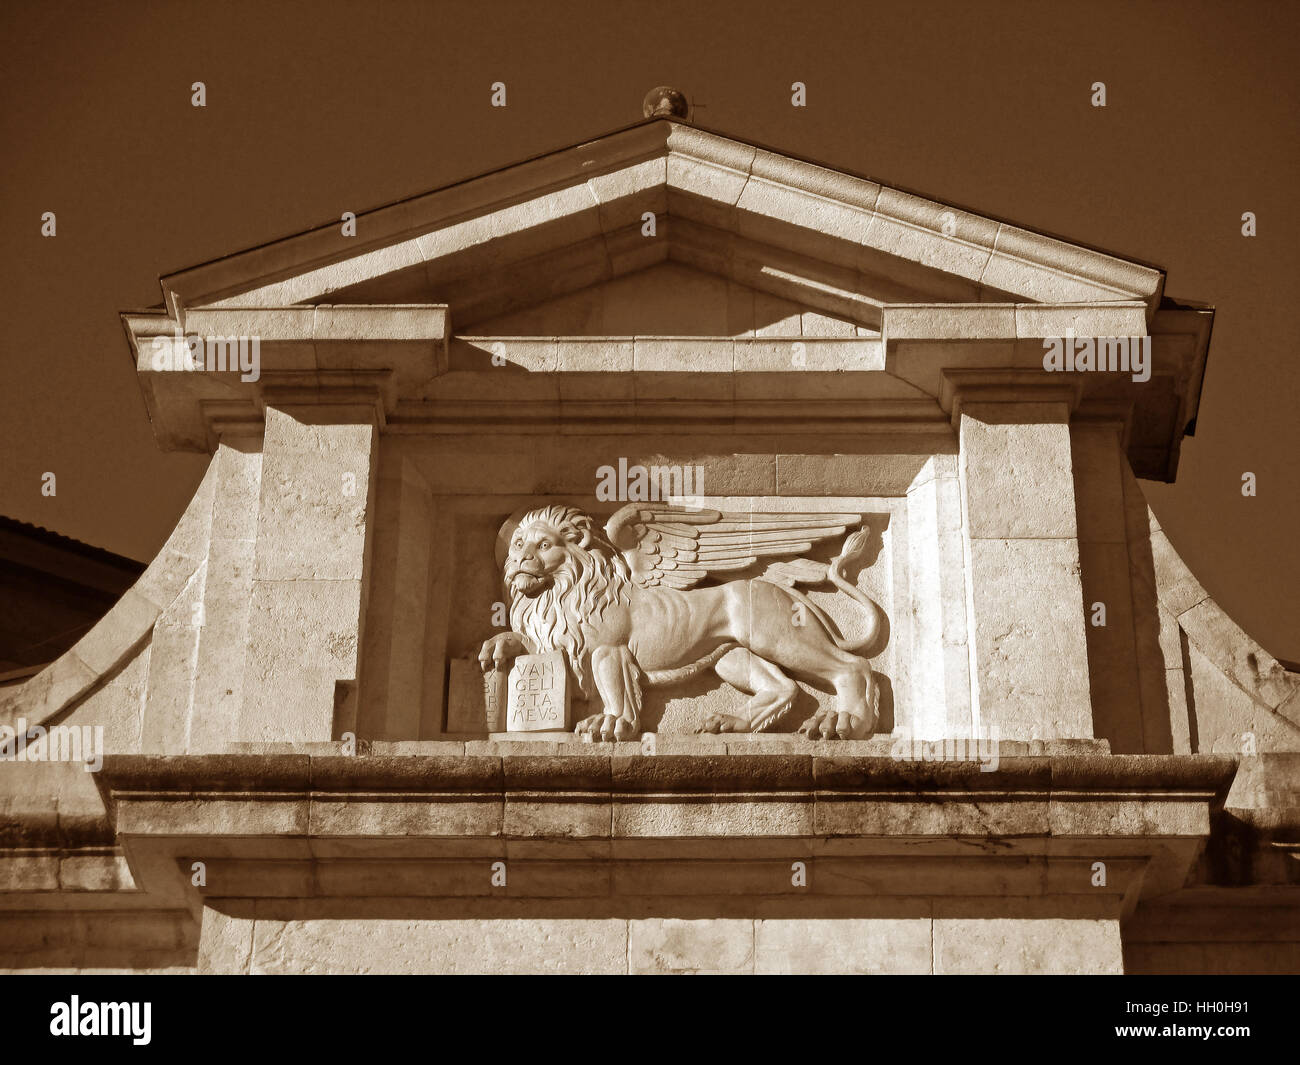 Beautiful Relief of Porta San Giacomo, City Gate of the Upper Town in Bergamo of Italy in Sepia Tone - Stock Image